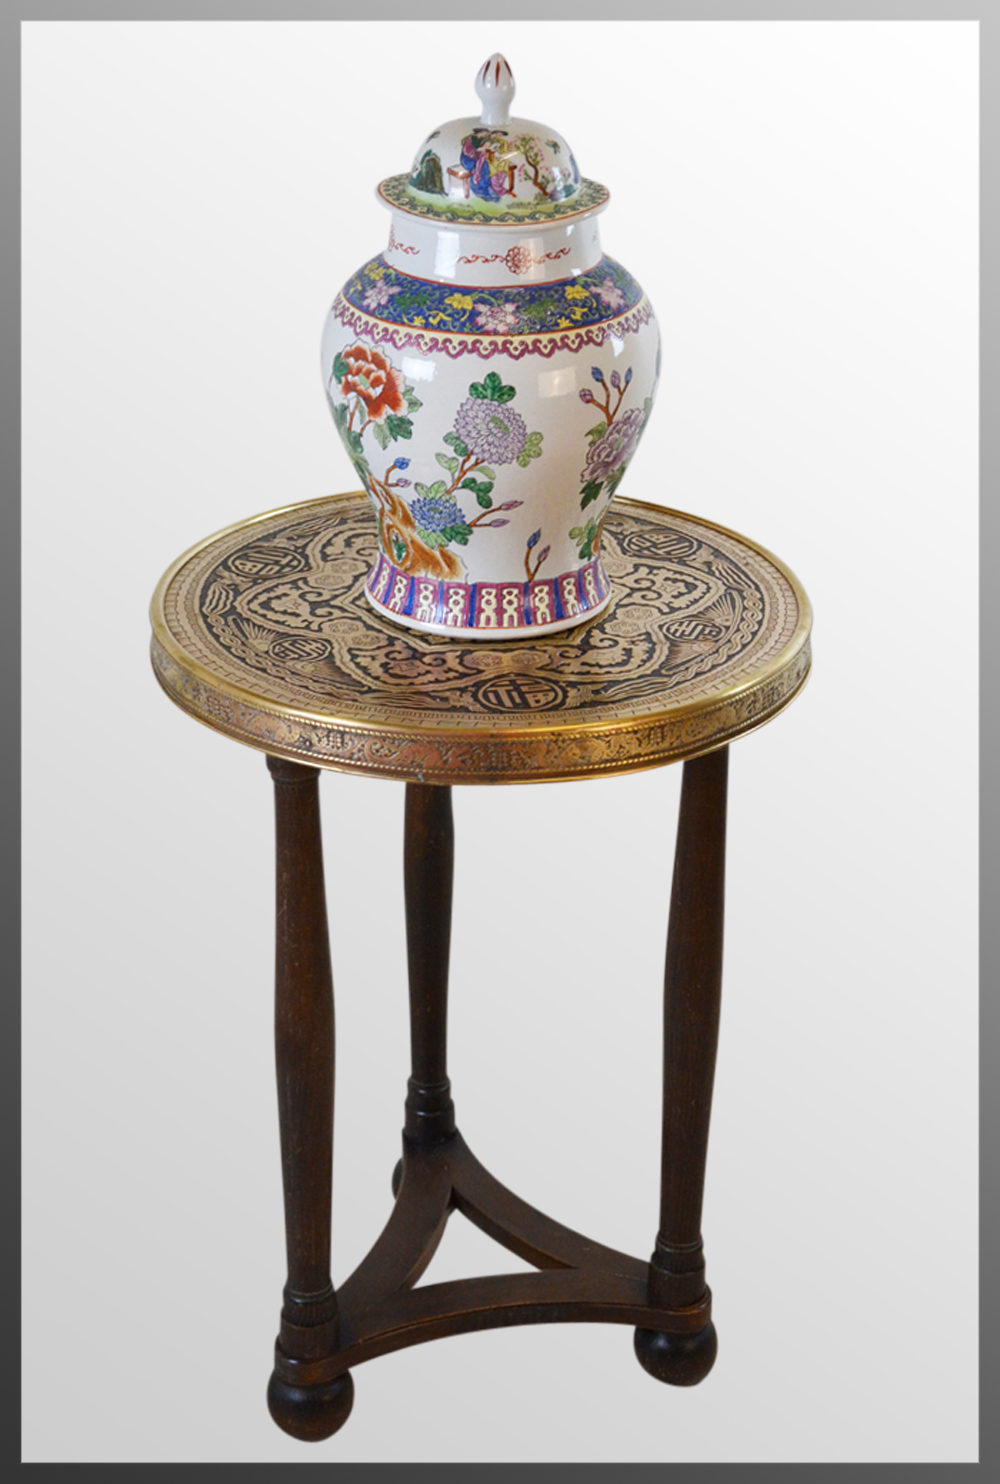 The antique coffee tea table berber benares tray lamp oriental folding - Antique Berber Benares Brass Lamp Table Oak